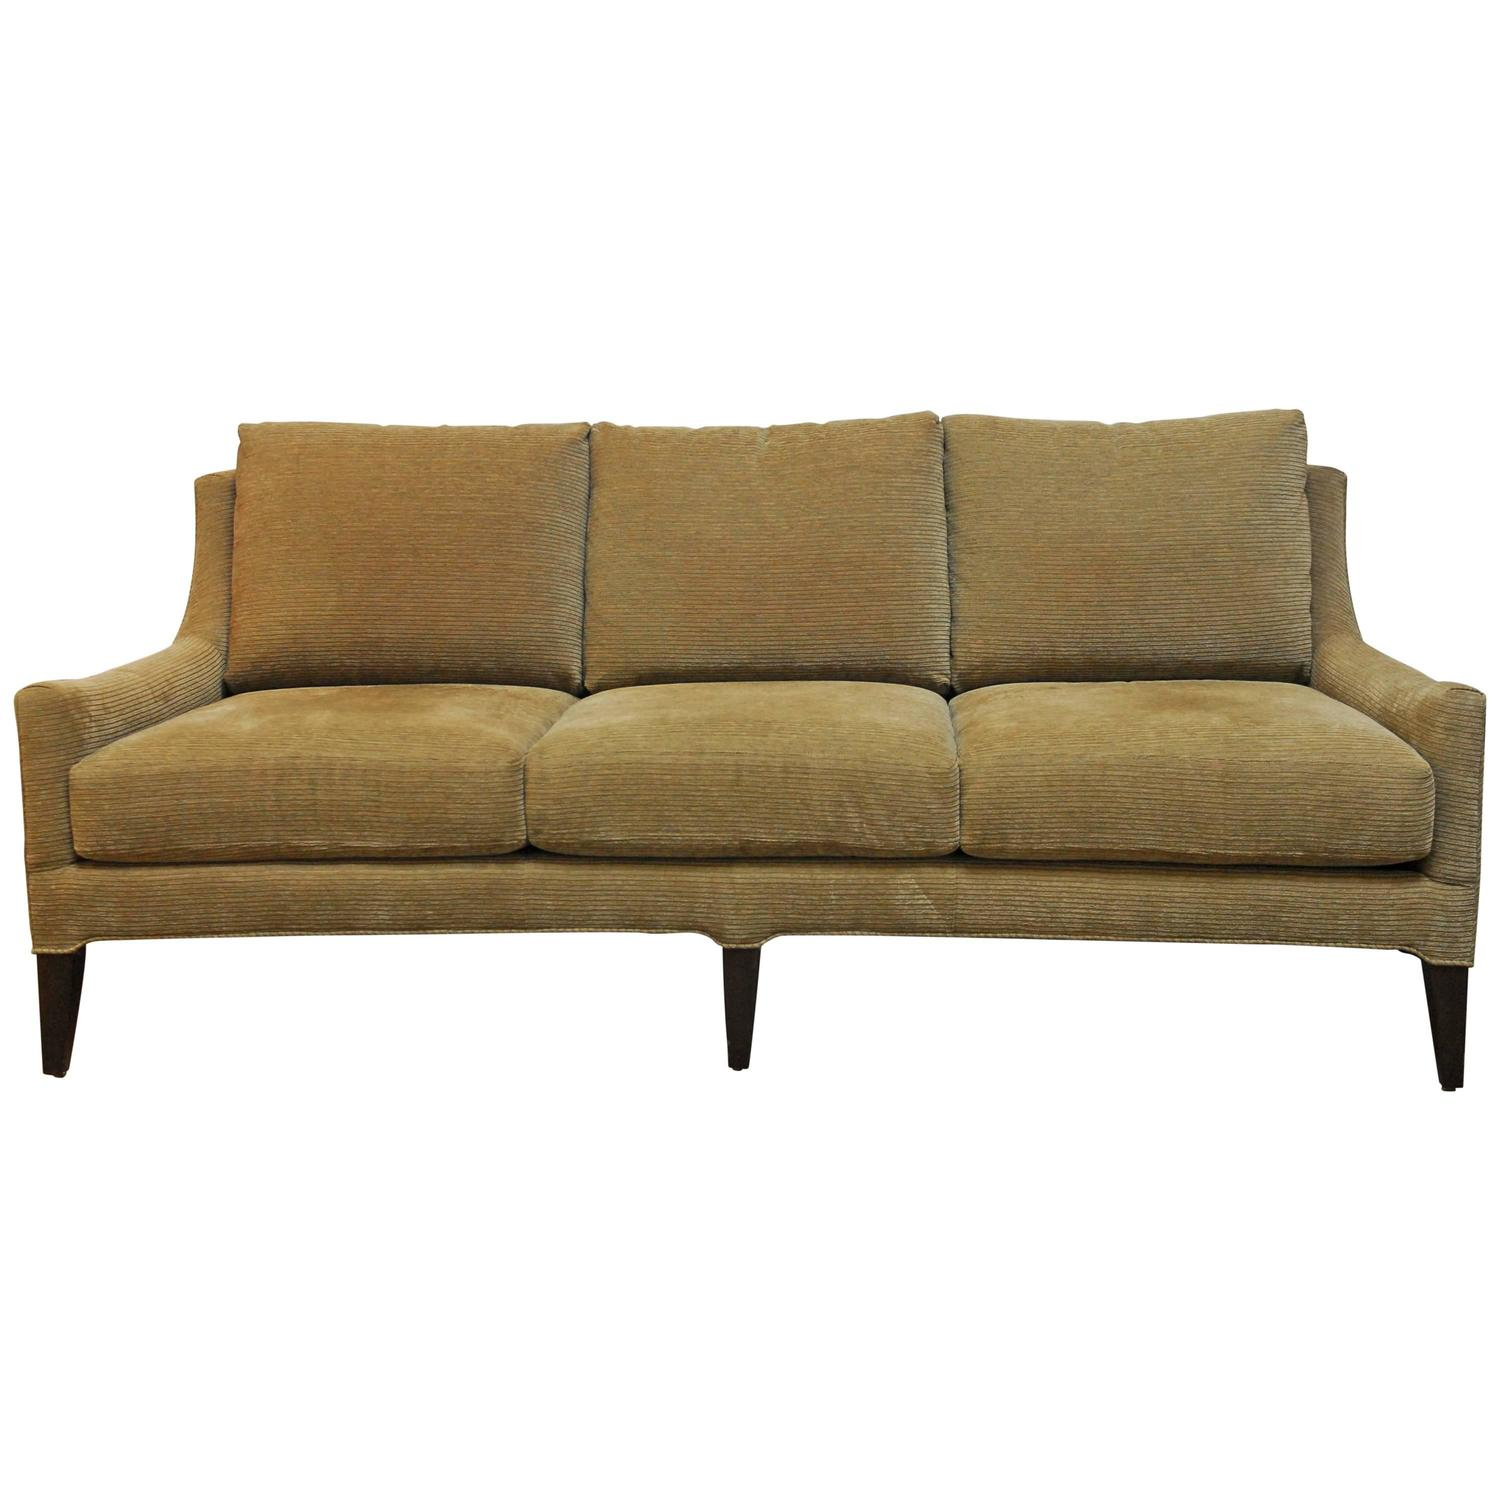 Mid century modern style sofa by kravet for sale at 1stdibs for Mid century style furniture